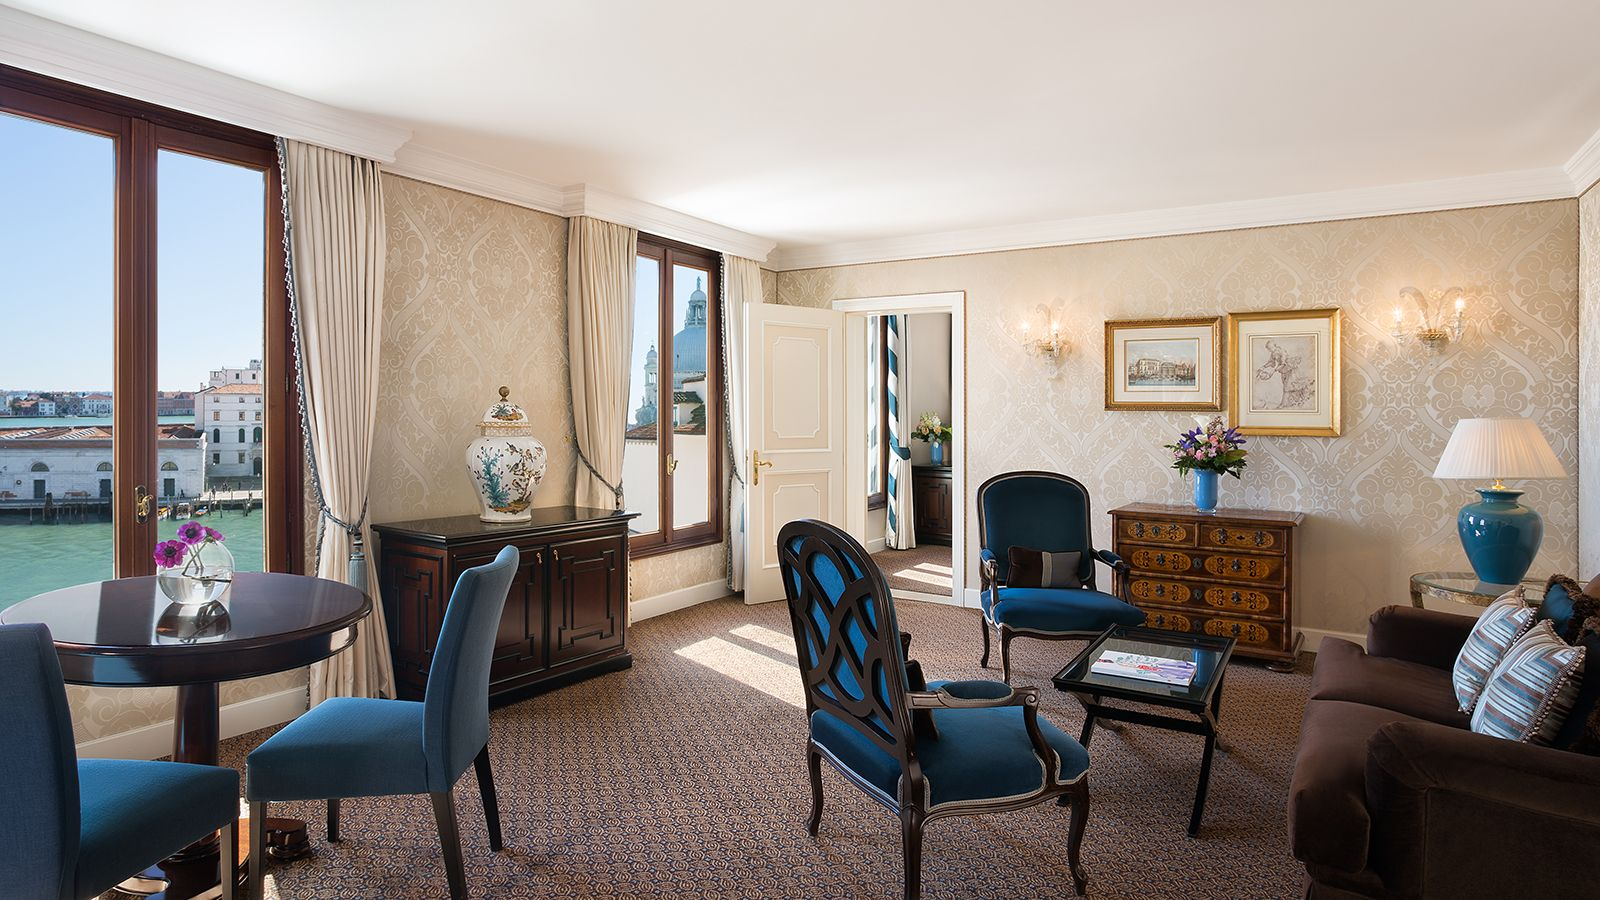 Image of the Living Room of the Luxury Suite at The Westin Europa & Regina, Venice